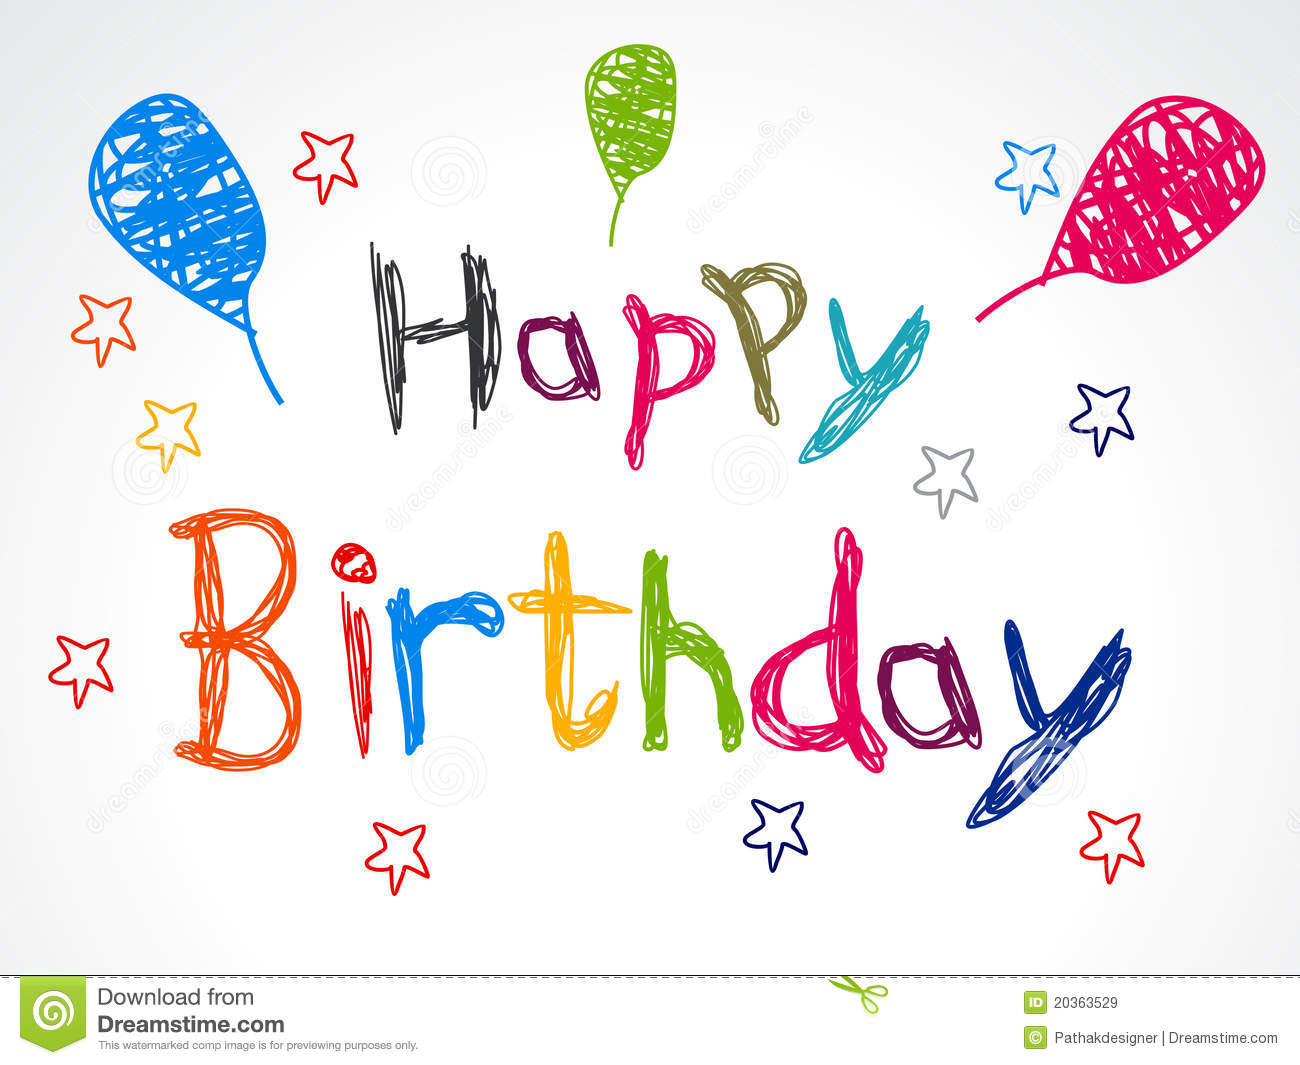 Royalty Free Birthday Images ~ Abstract happy birthday concept royalty free stock images image